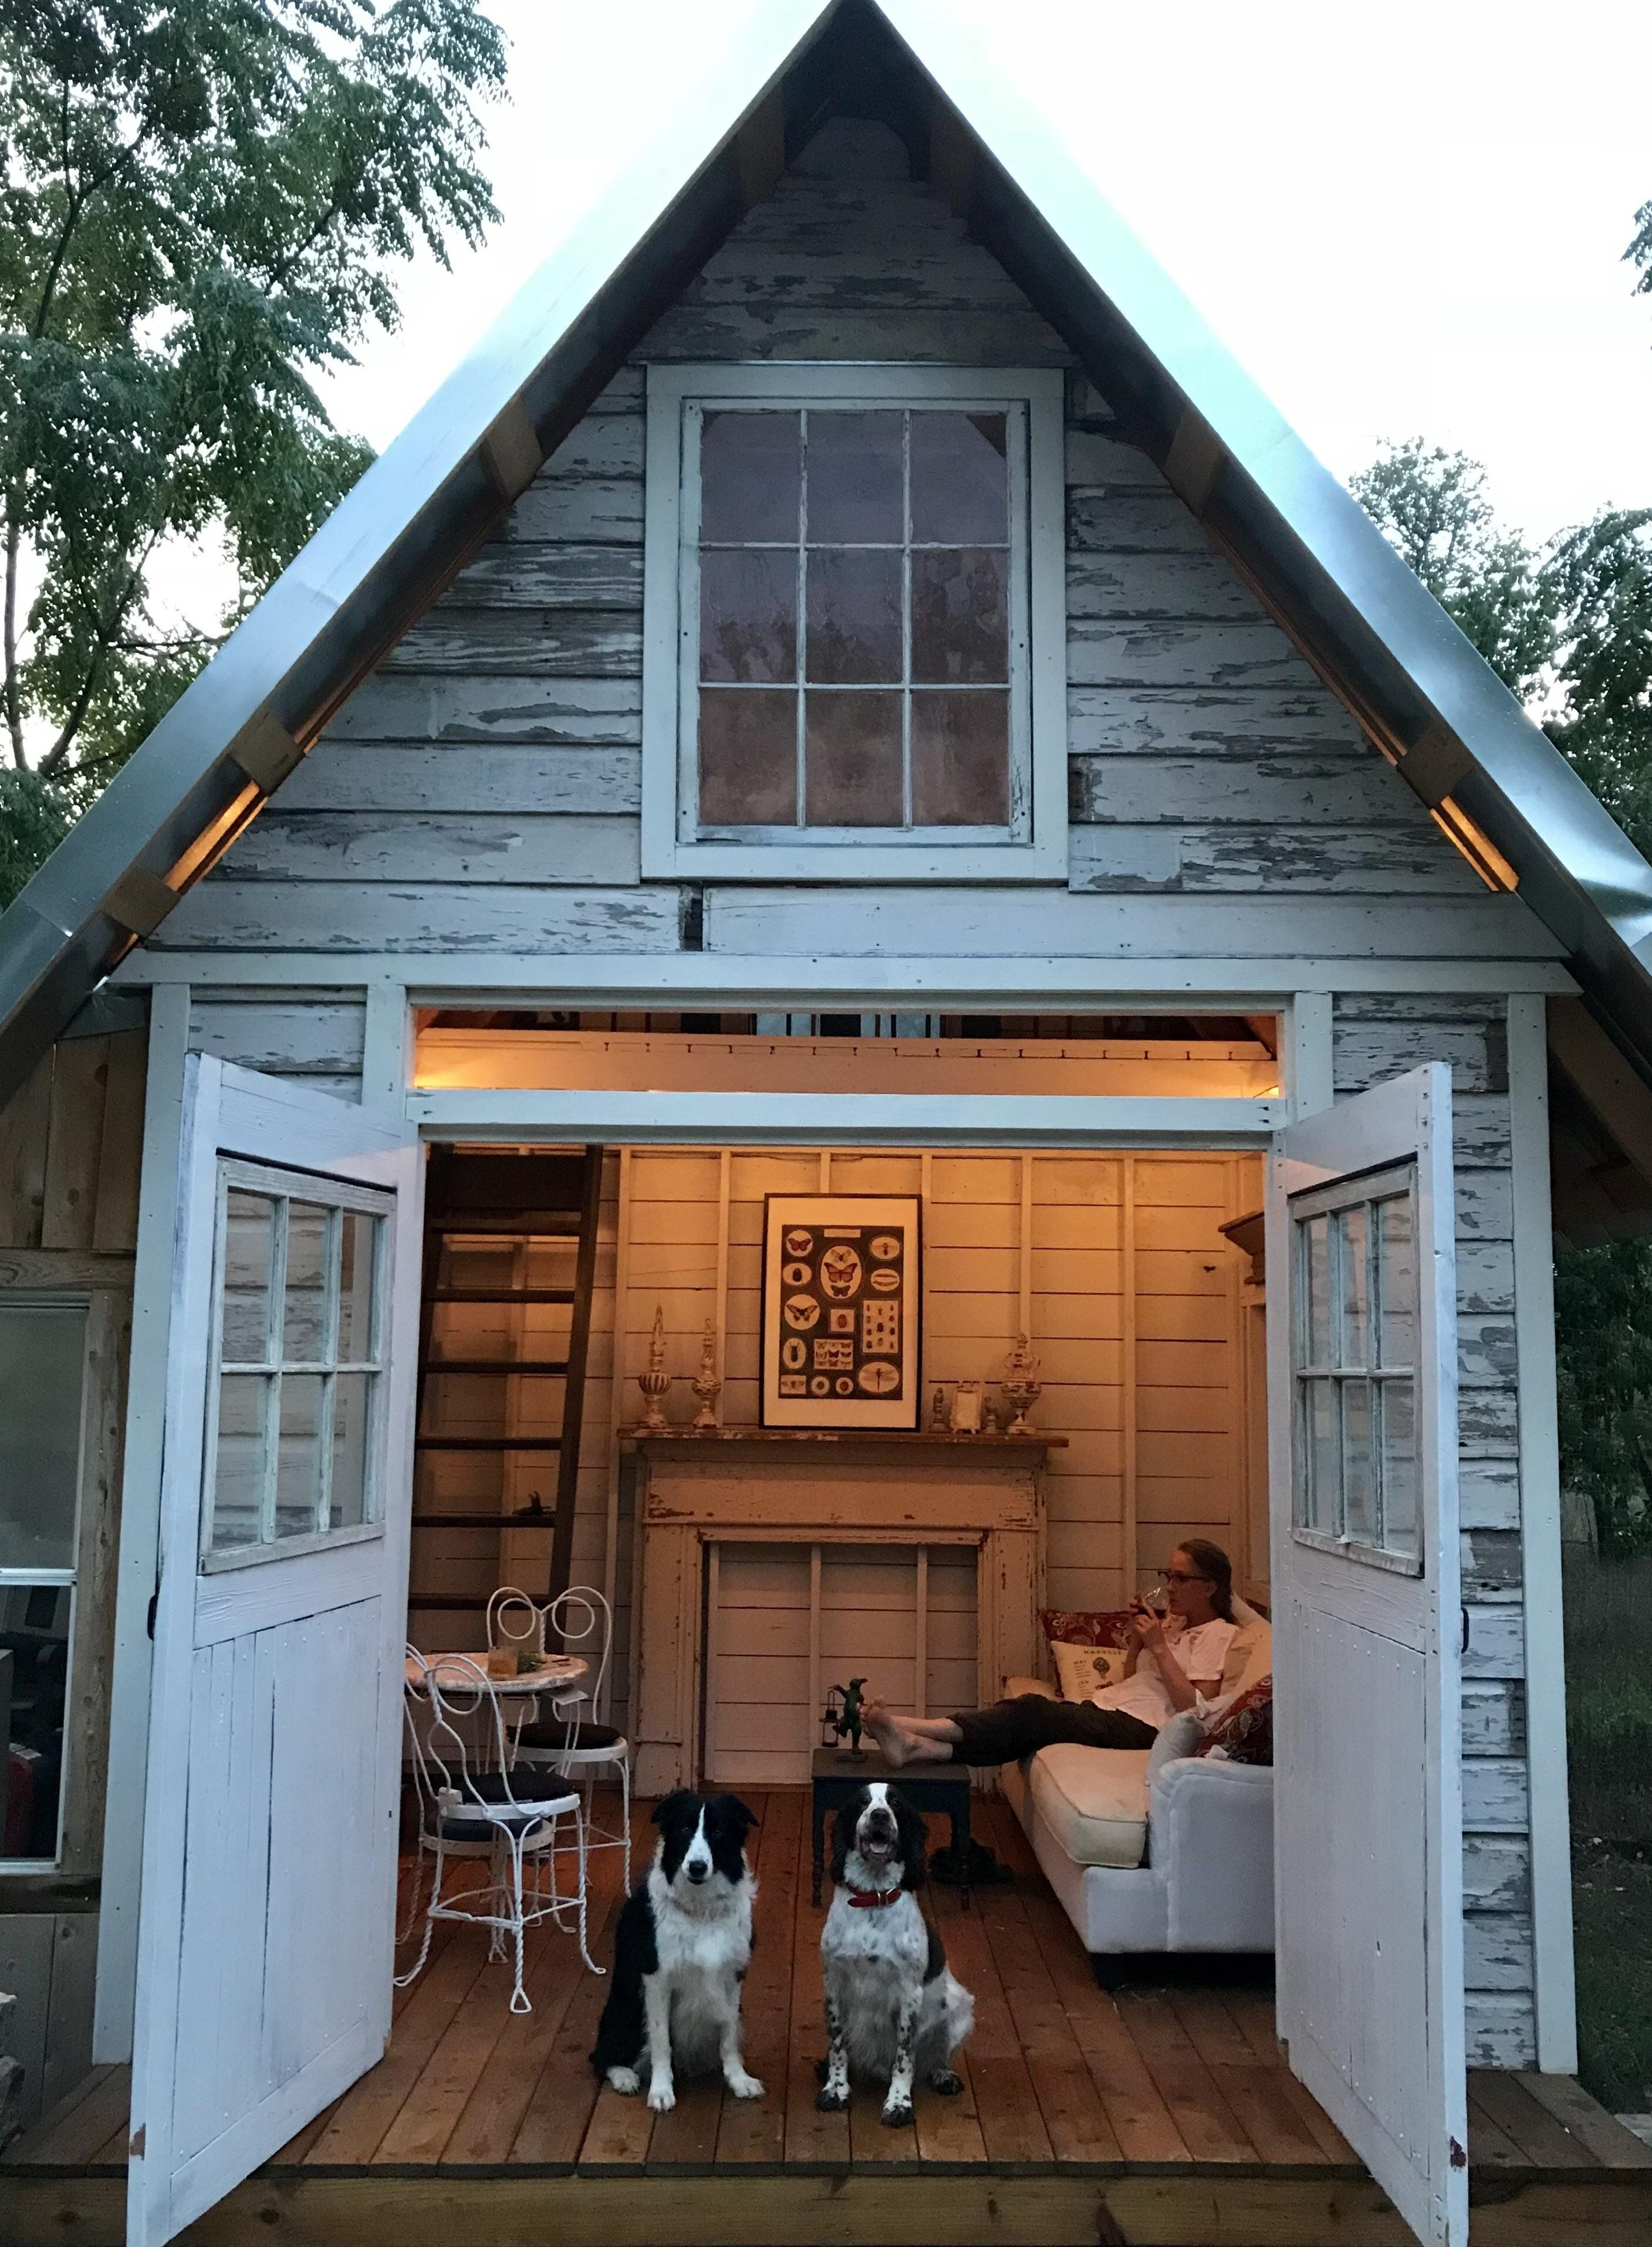 Built A Garden House For My Beautiful Wife Hard To Leave Cozyplaces Shed Homes Shed Tiny House Decor